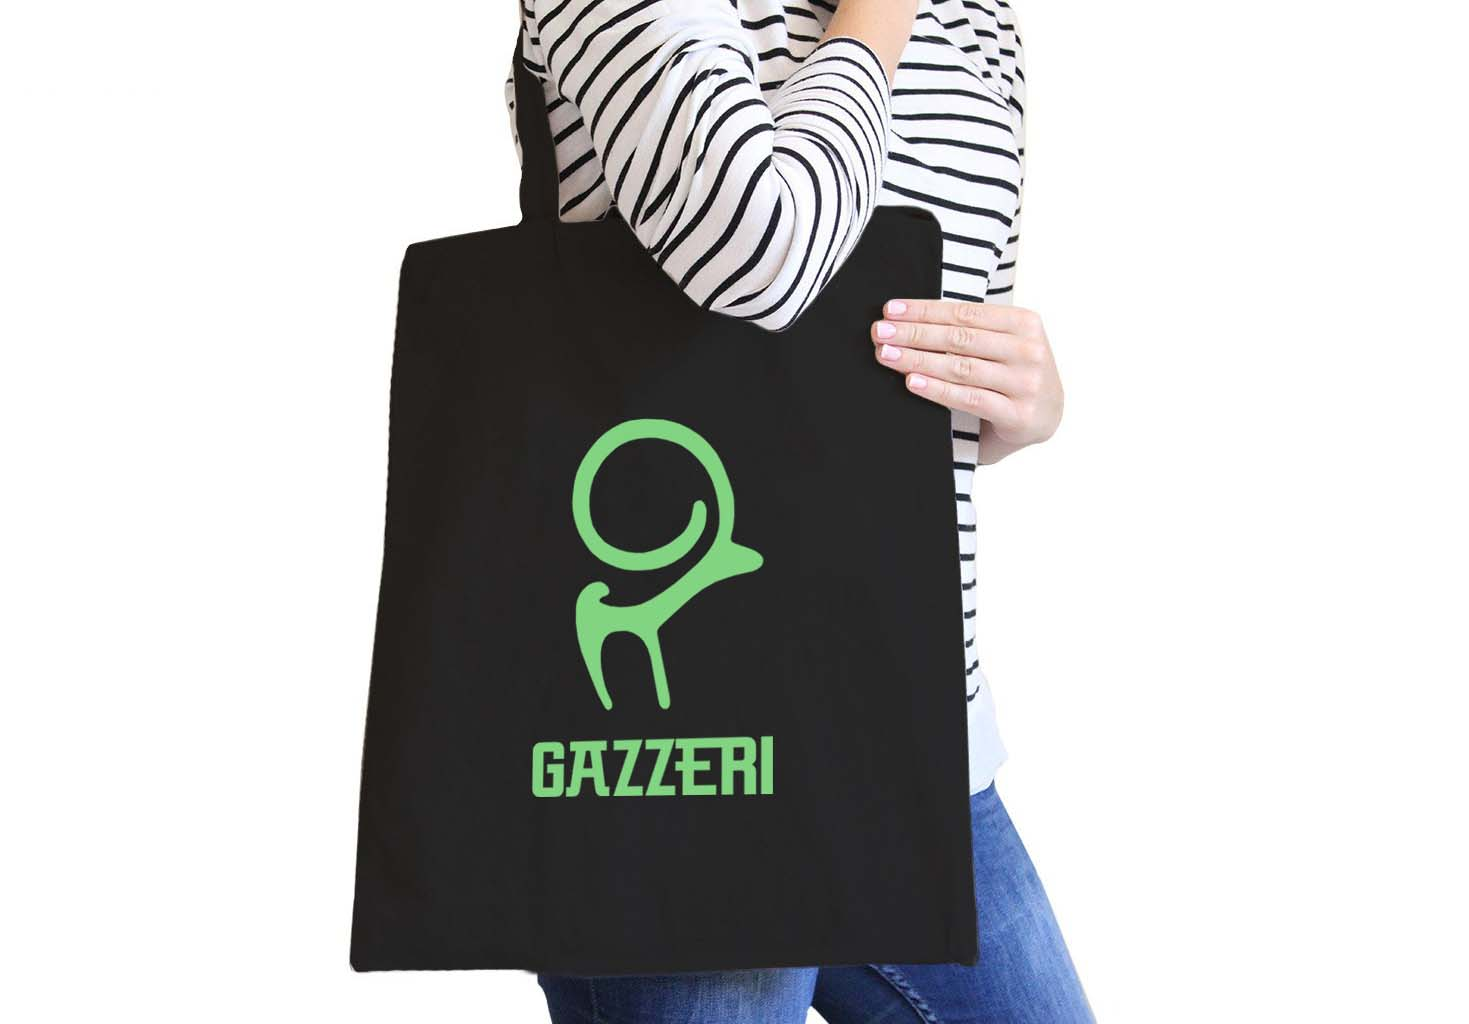 wholesale tote bags in Dallas Texas 2